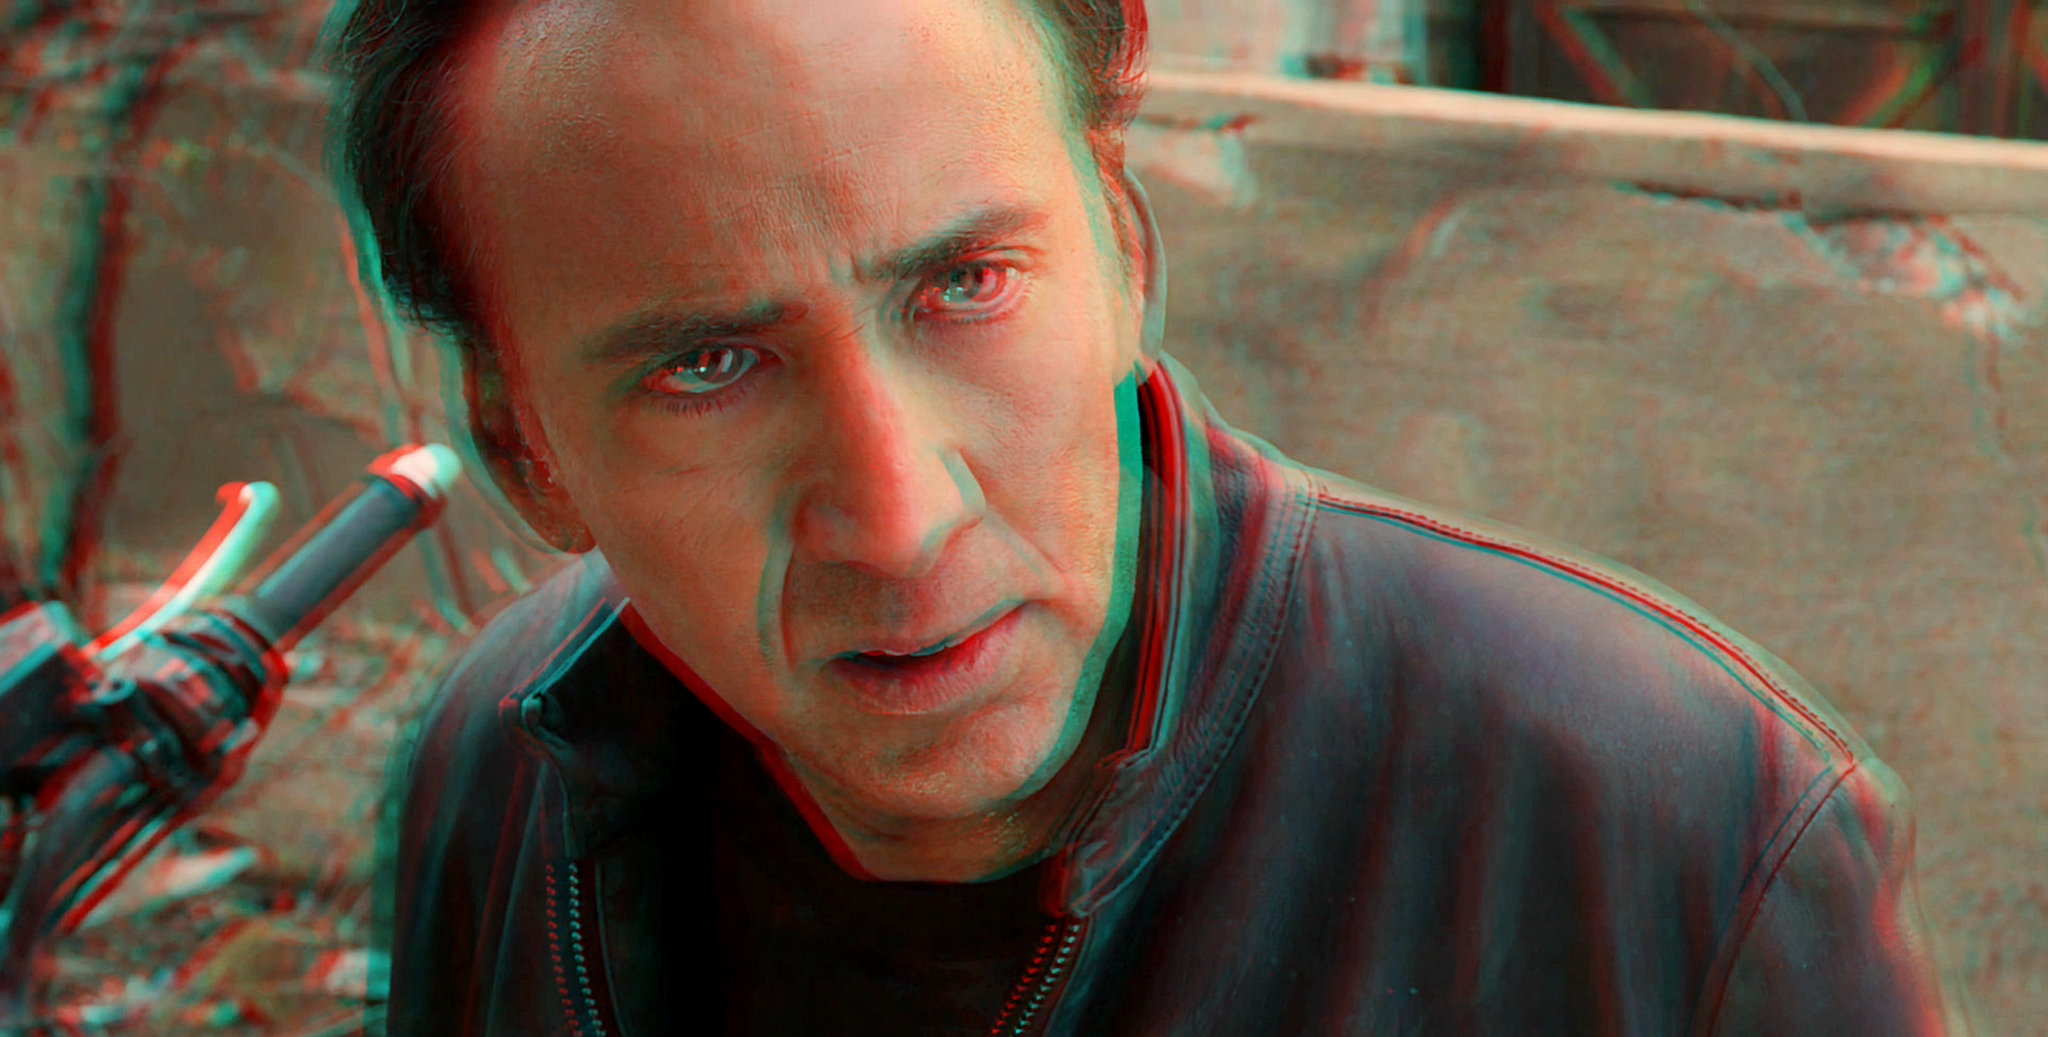 Nicolas Cage understood the maximalist potential of 3D movies